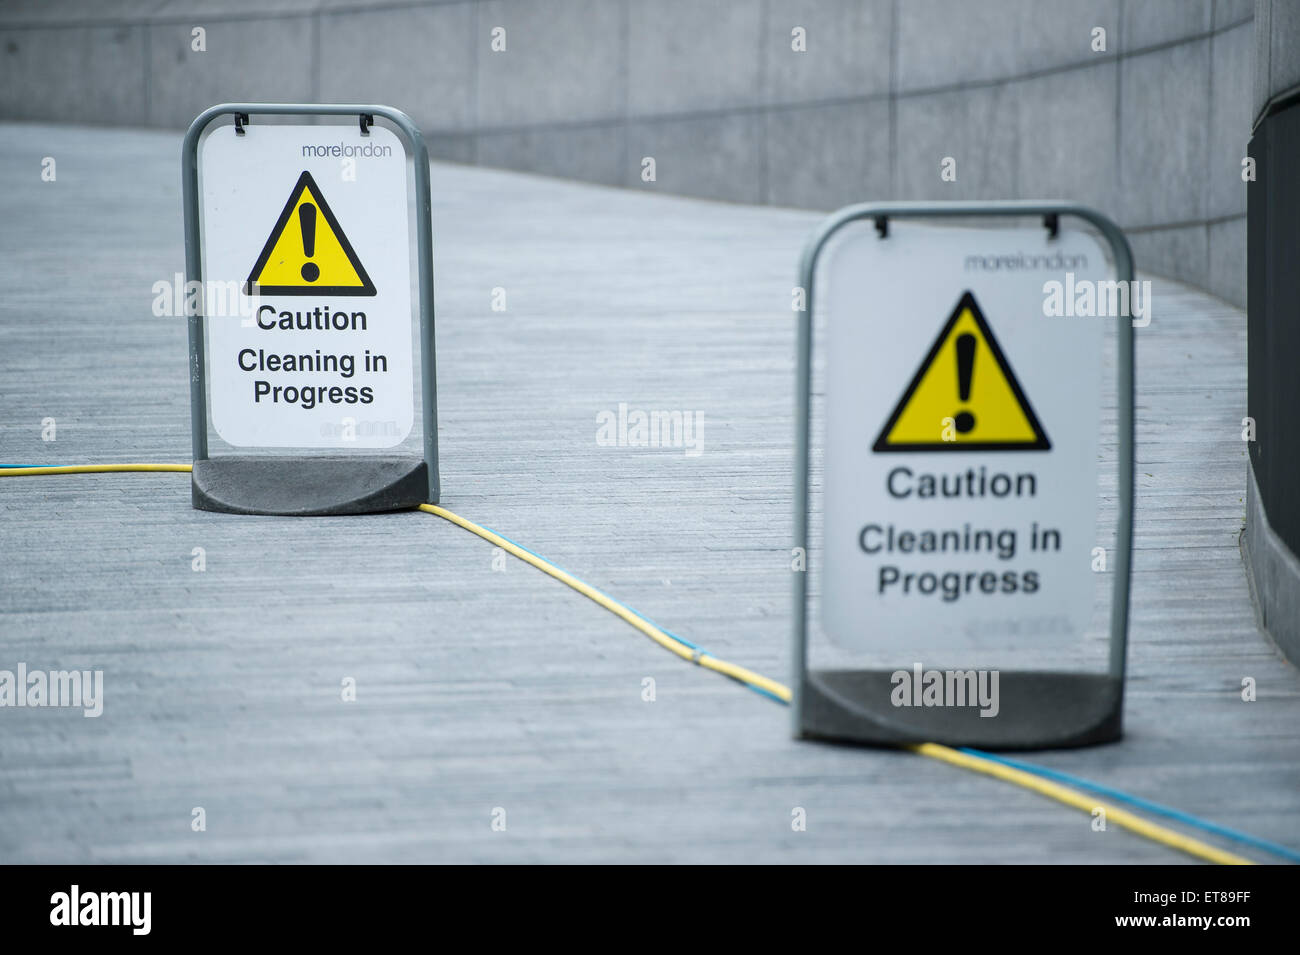 Caution signs, cleaning in progress outside City Hall in London - Stock Image